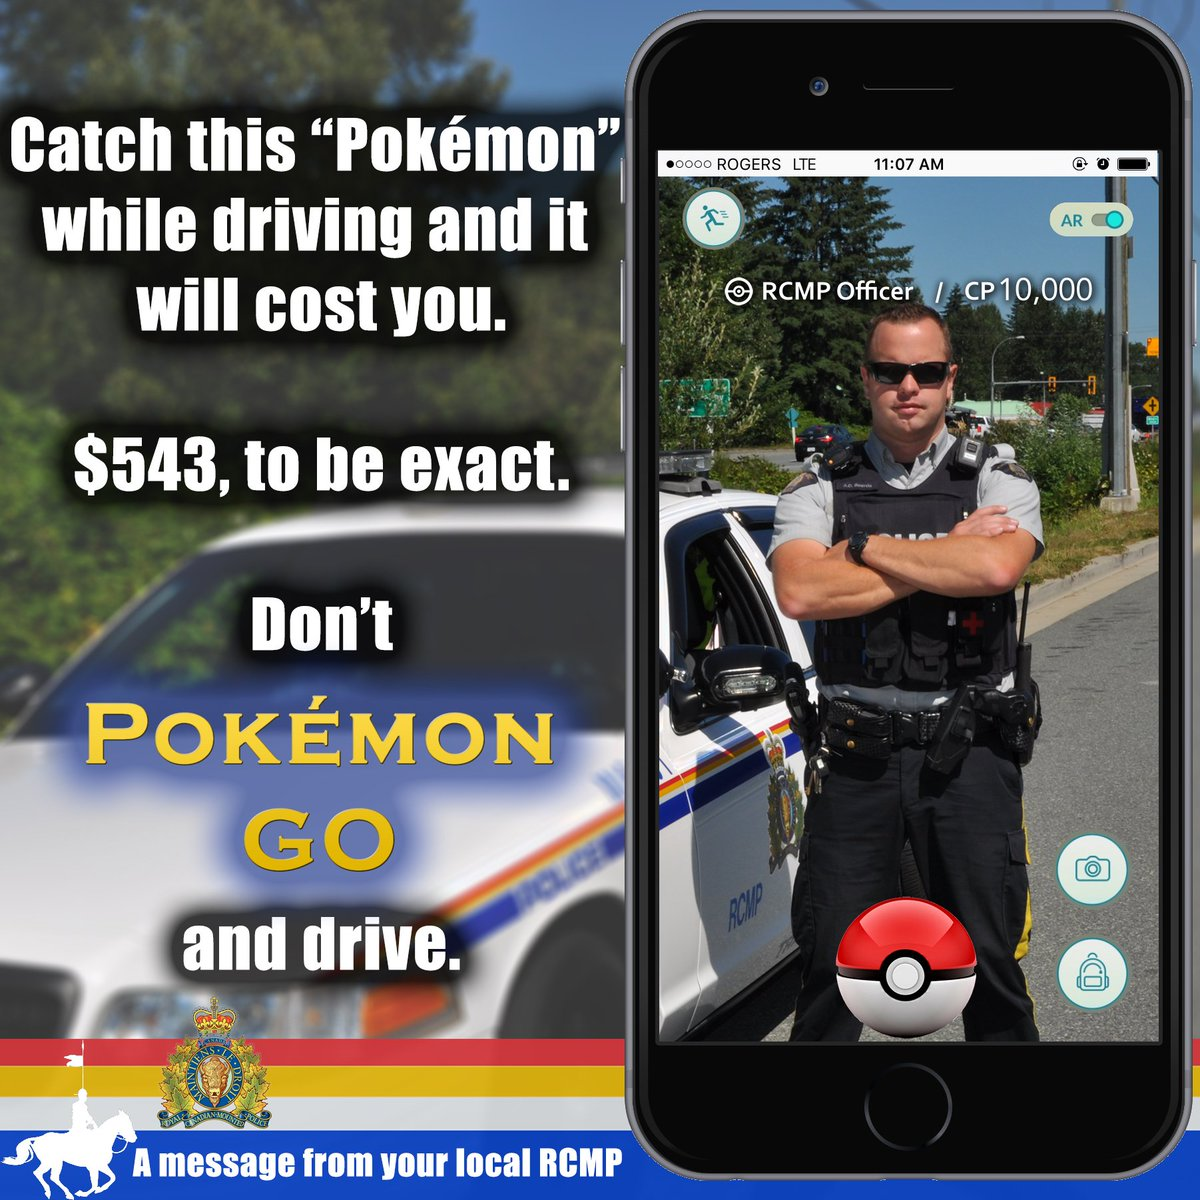 We are into catching different kind of character, one who is #distracteddriving. https://t.co/U7nnPFuHWJ